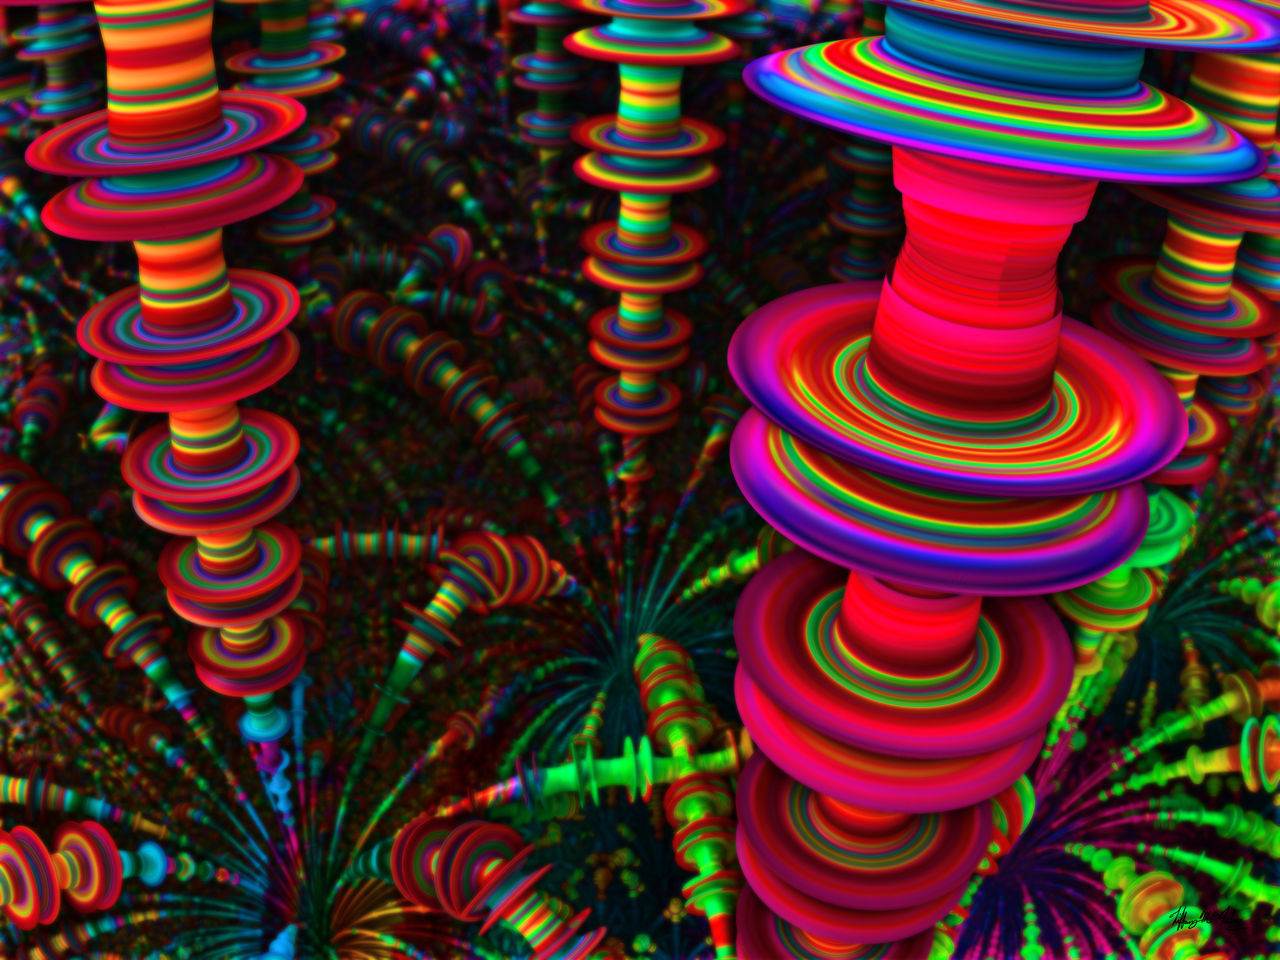 Psychedelic Ascension